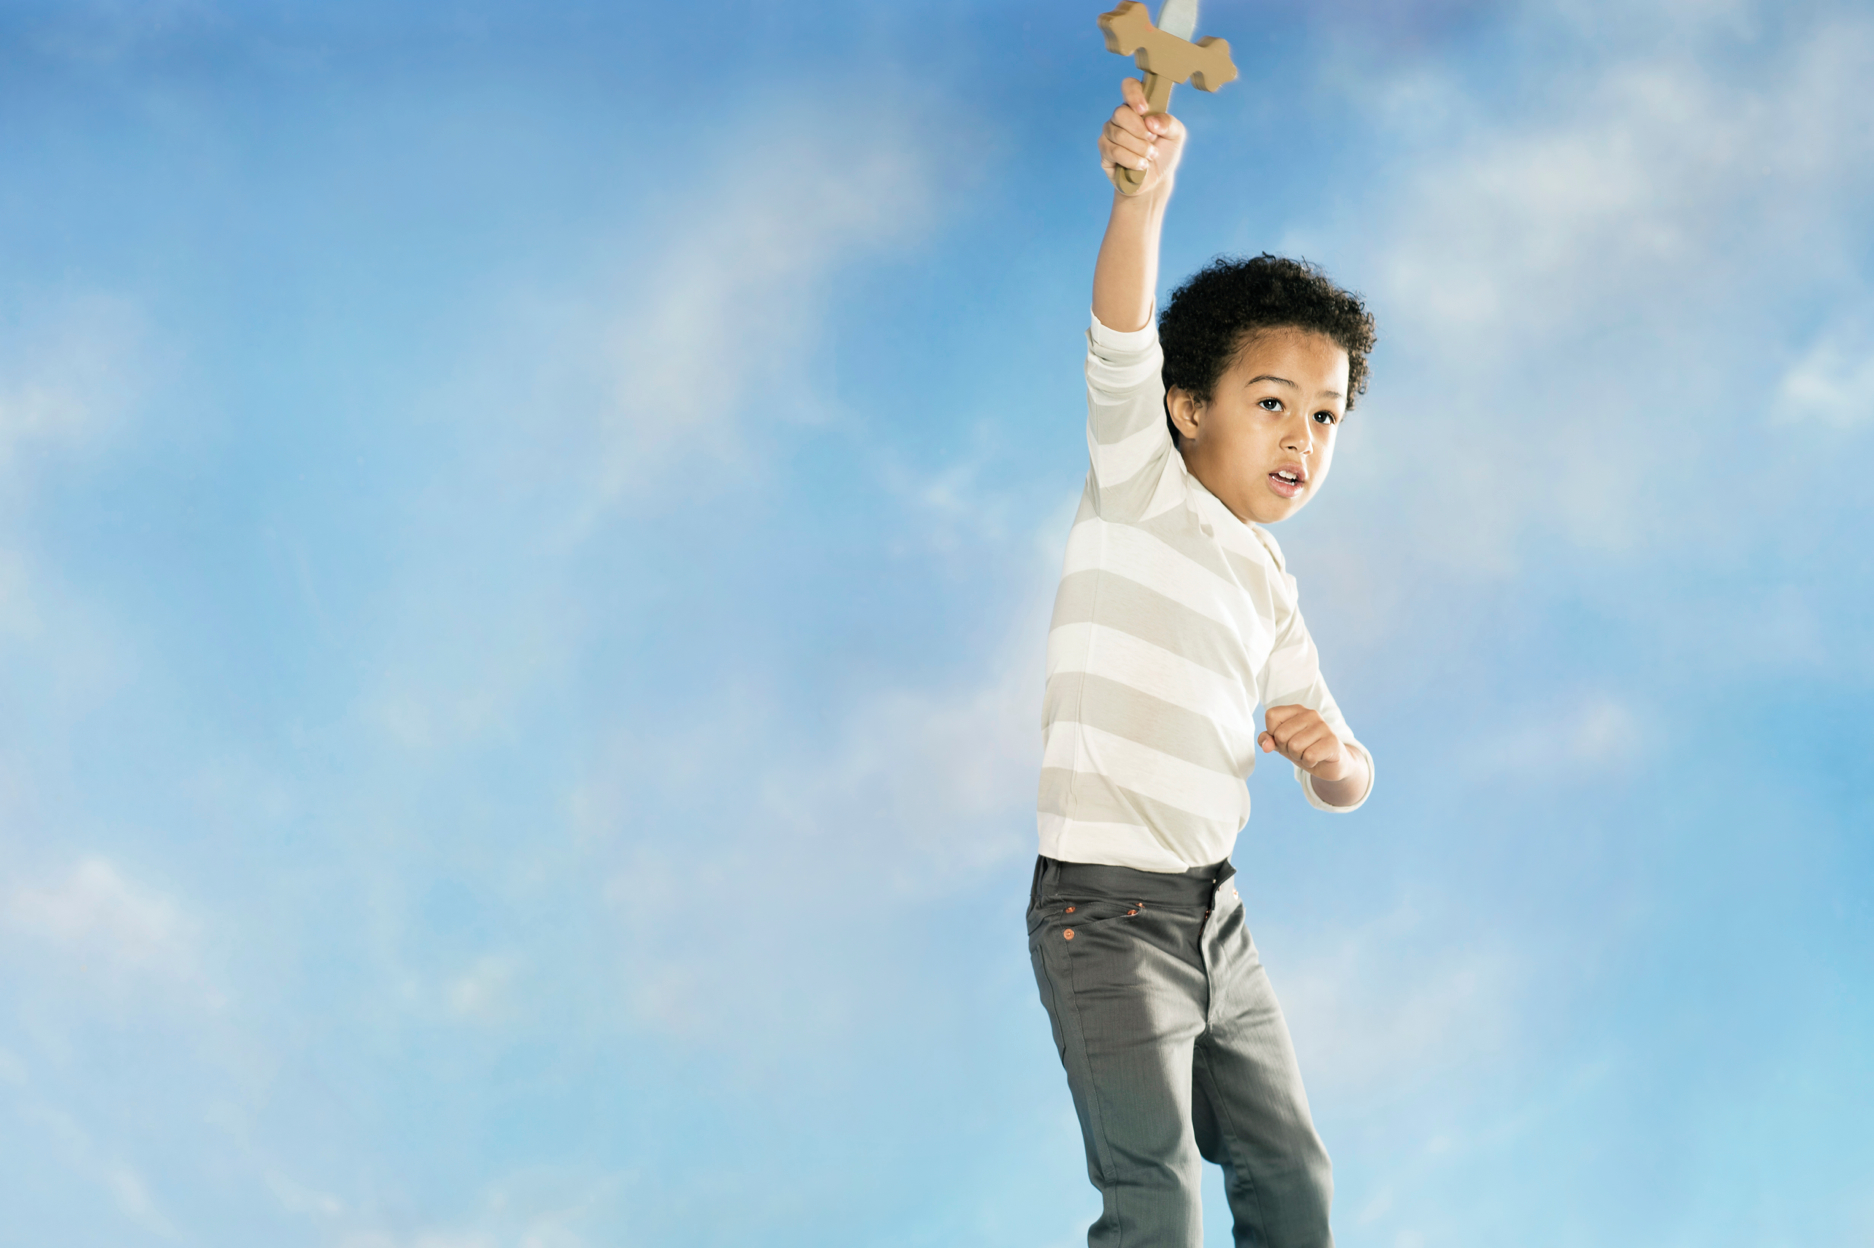 boy jumping in sky